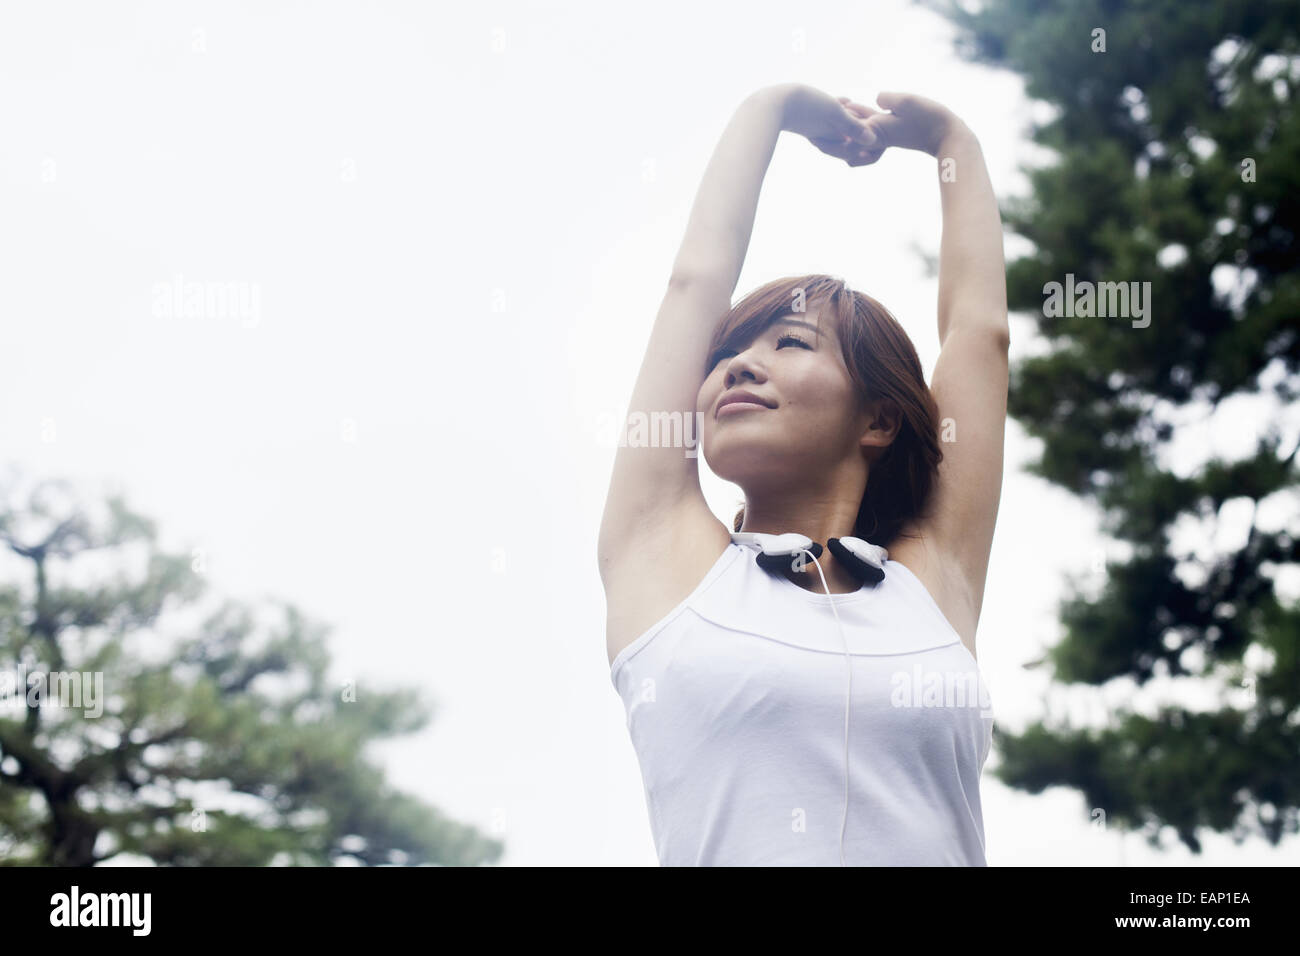 A woman in a Kyoto park, wearing headphones. Wearing jogging kit and stretching before exercise. - Stock Image